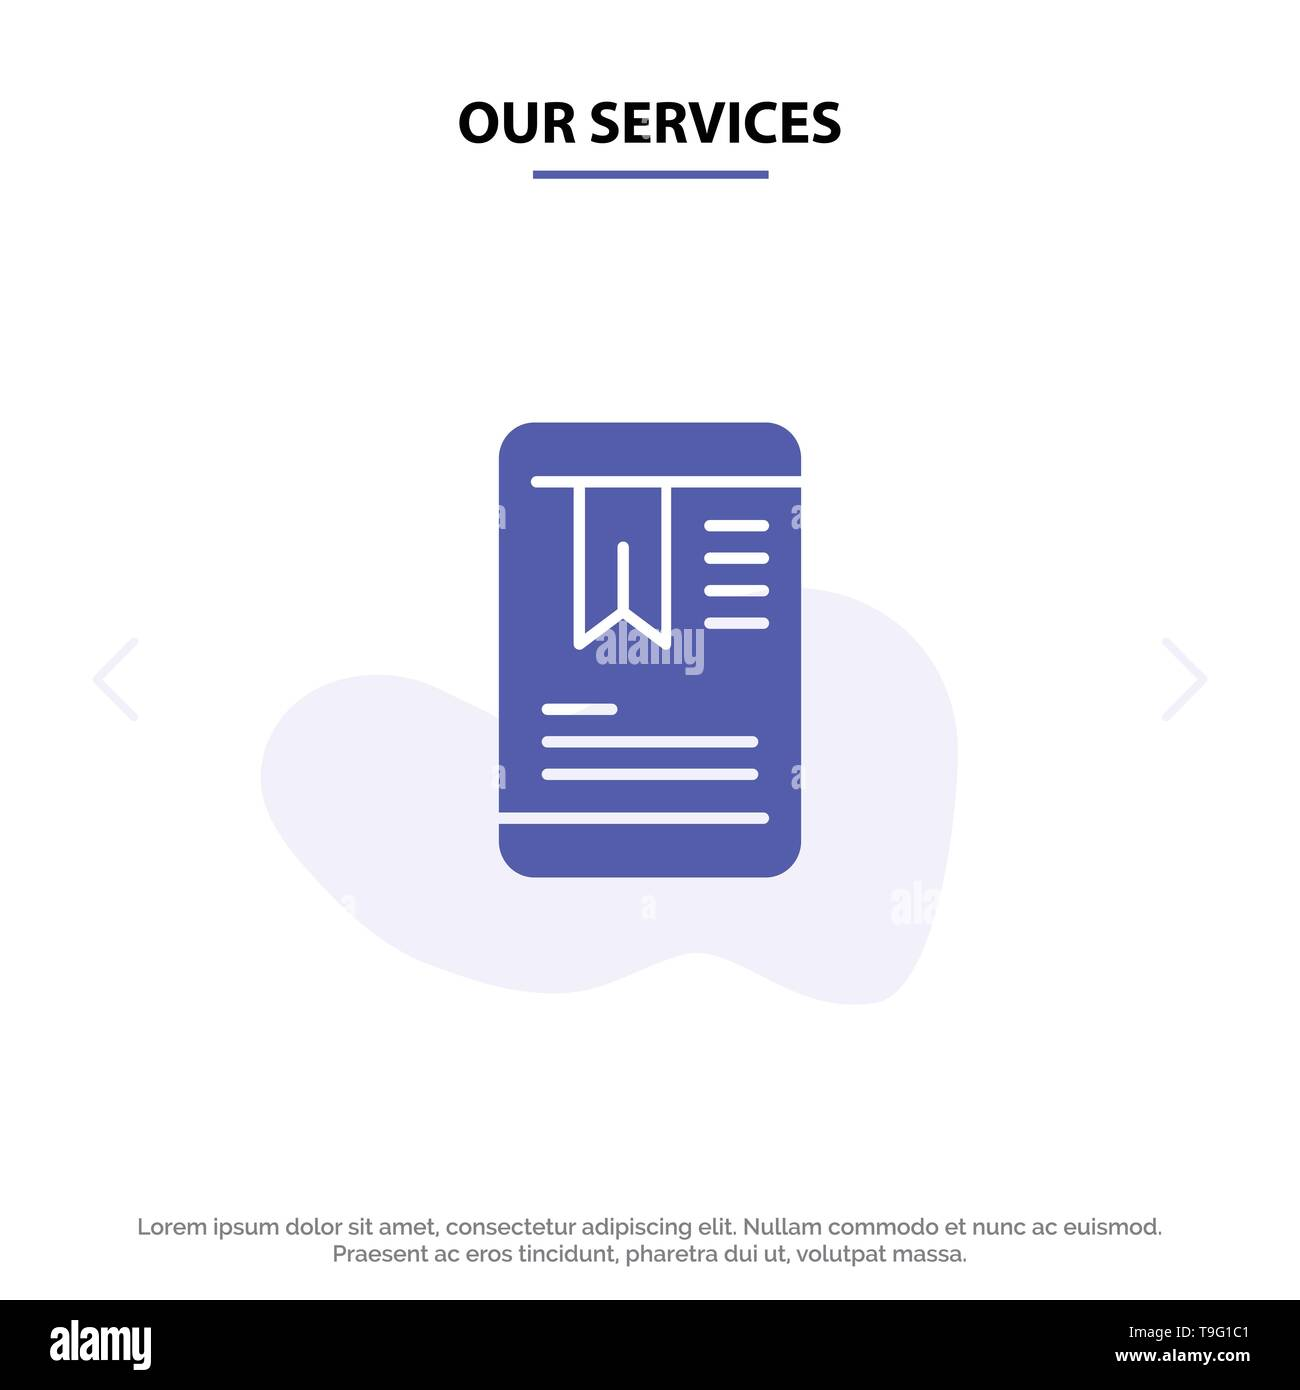 Our Services Mobile, Tag, OnEducation Solid Glyph Icon Web card Template - Stock Image